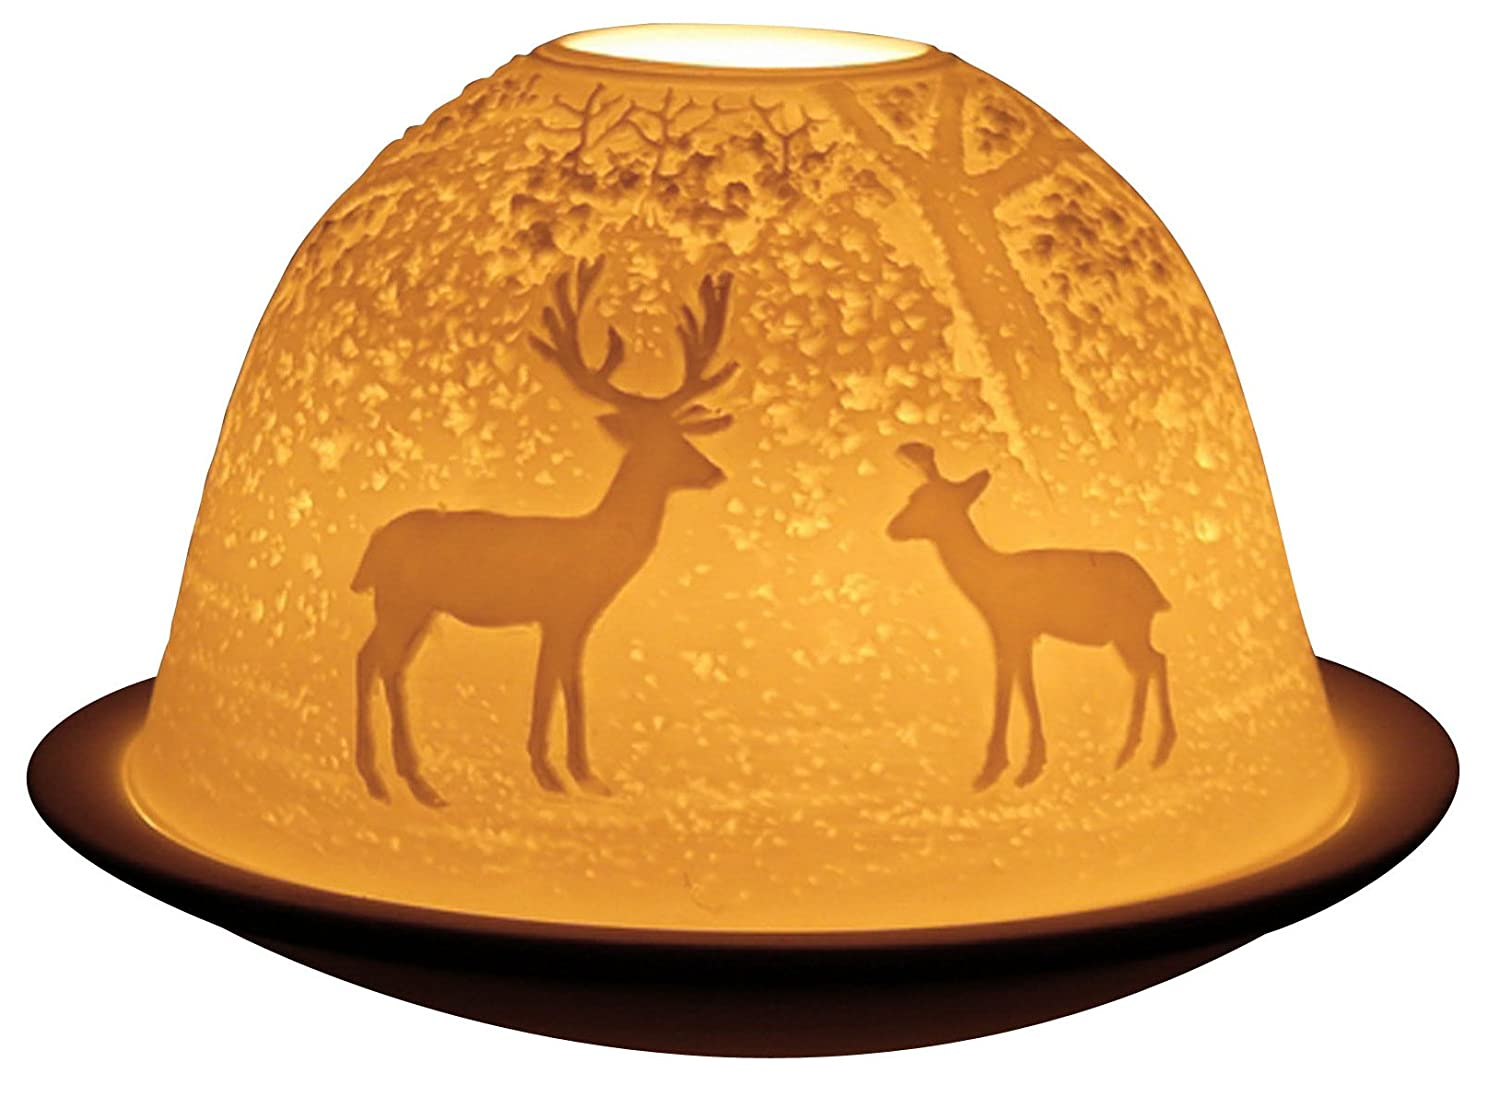 Welink Light-Glow Tealight Candle Holder, Forest Deer - LD09021 by Welink Ltd